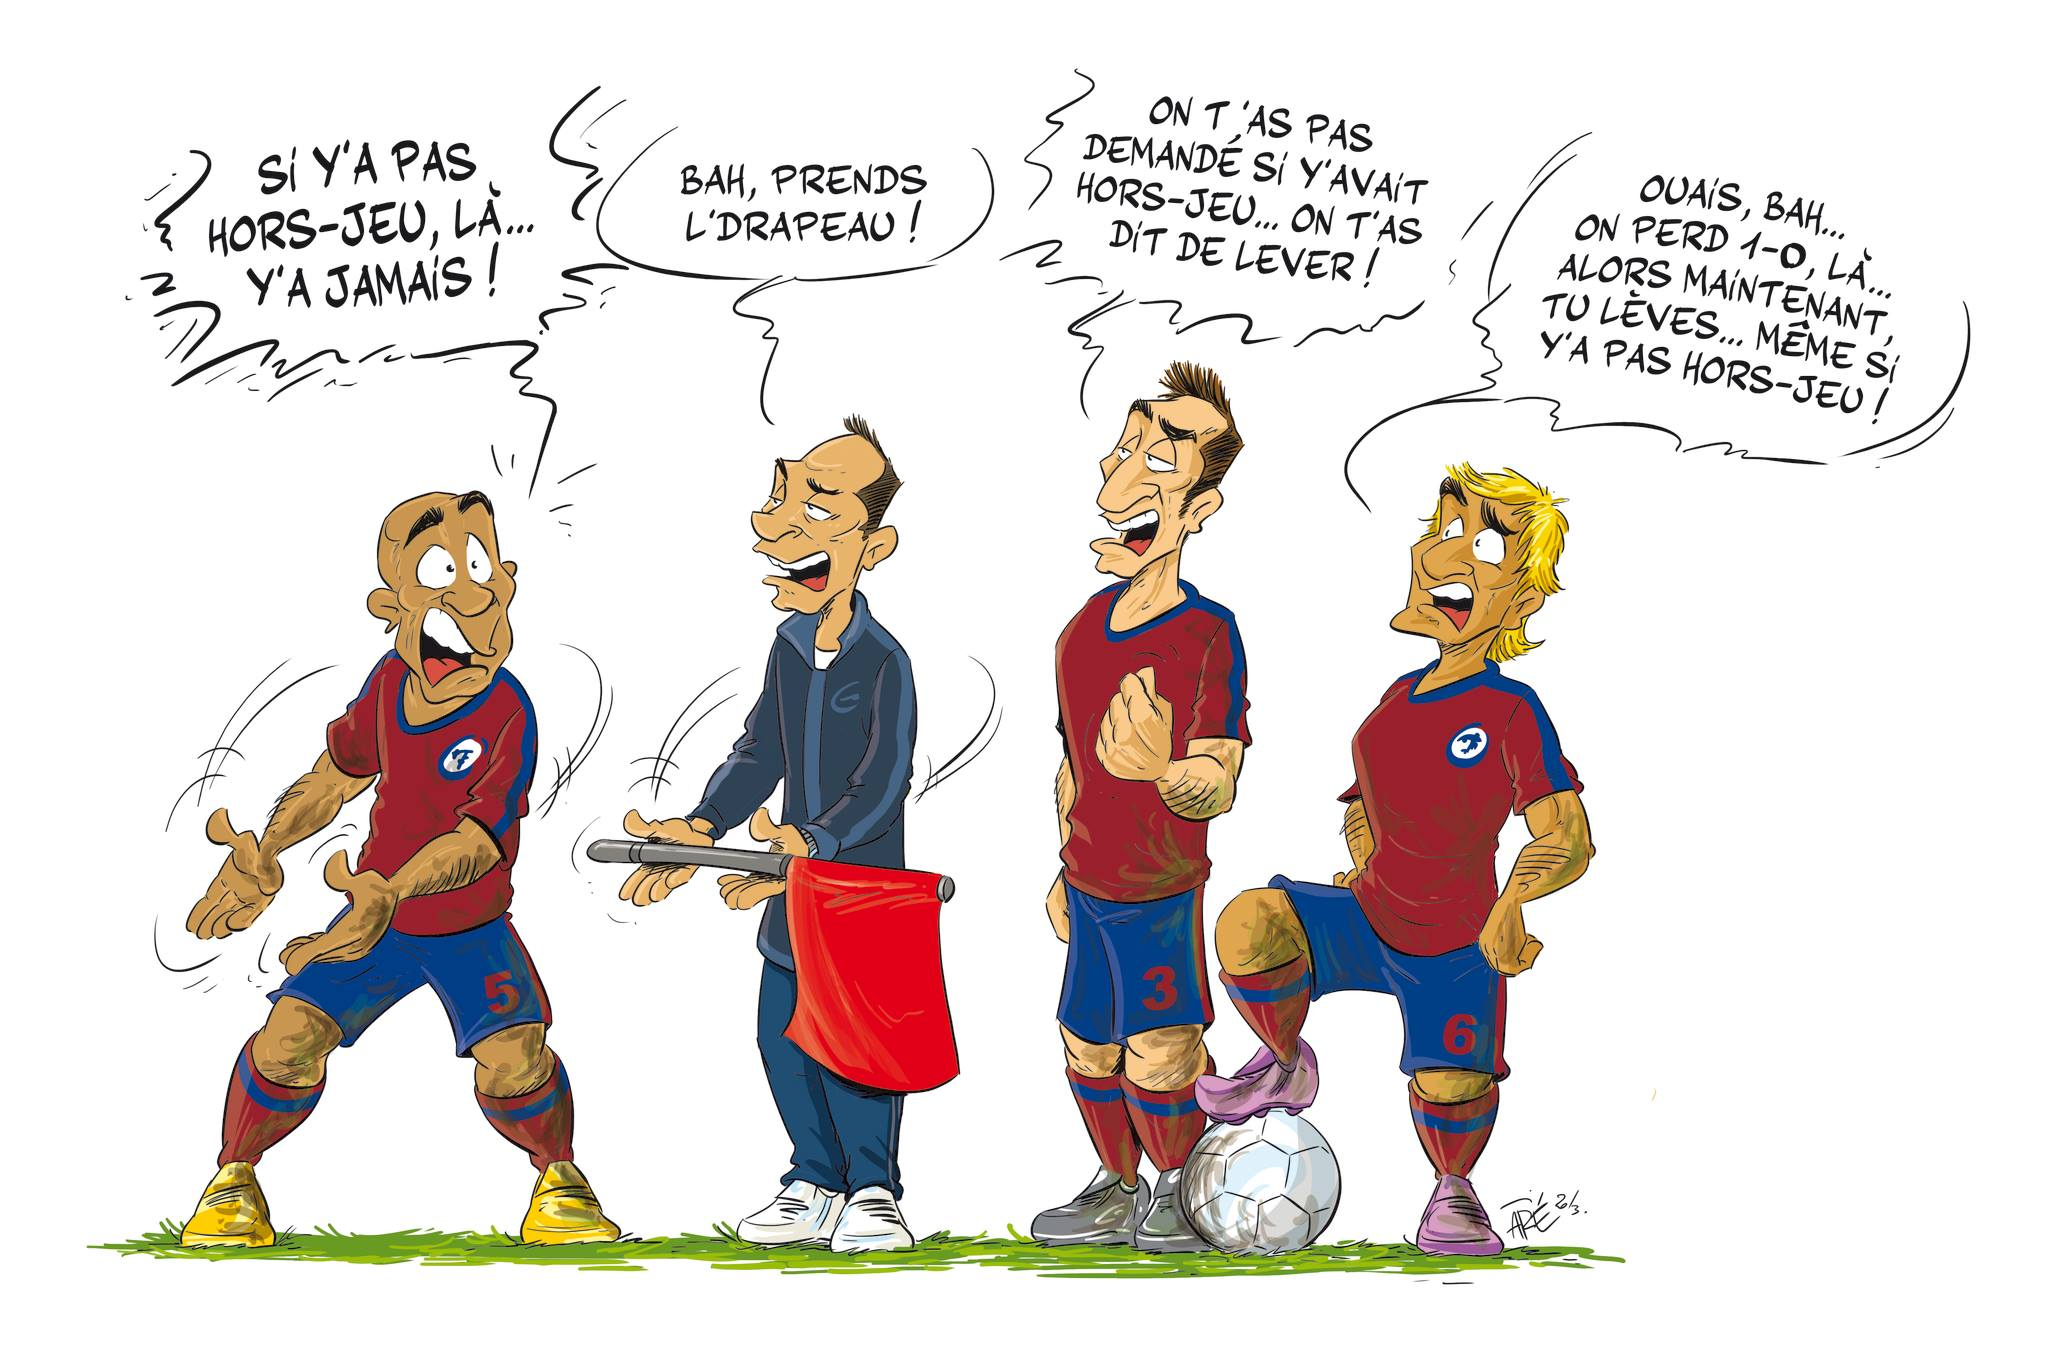 Hors-Jeu – Club Football Football Club Vallon Pont D'arc destiné Jeux De Foot Gardien De But